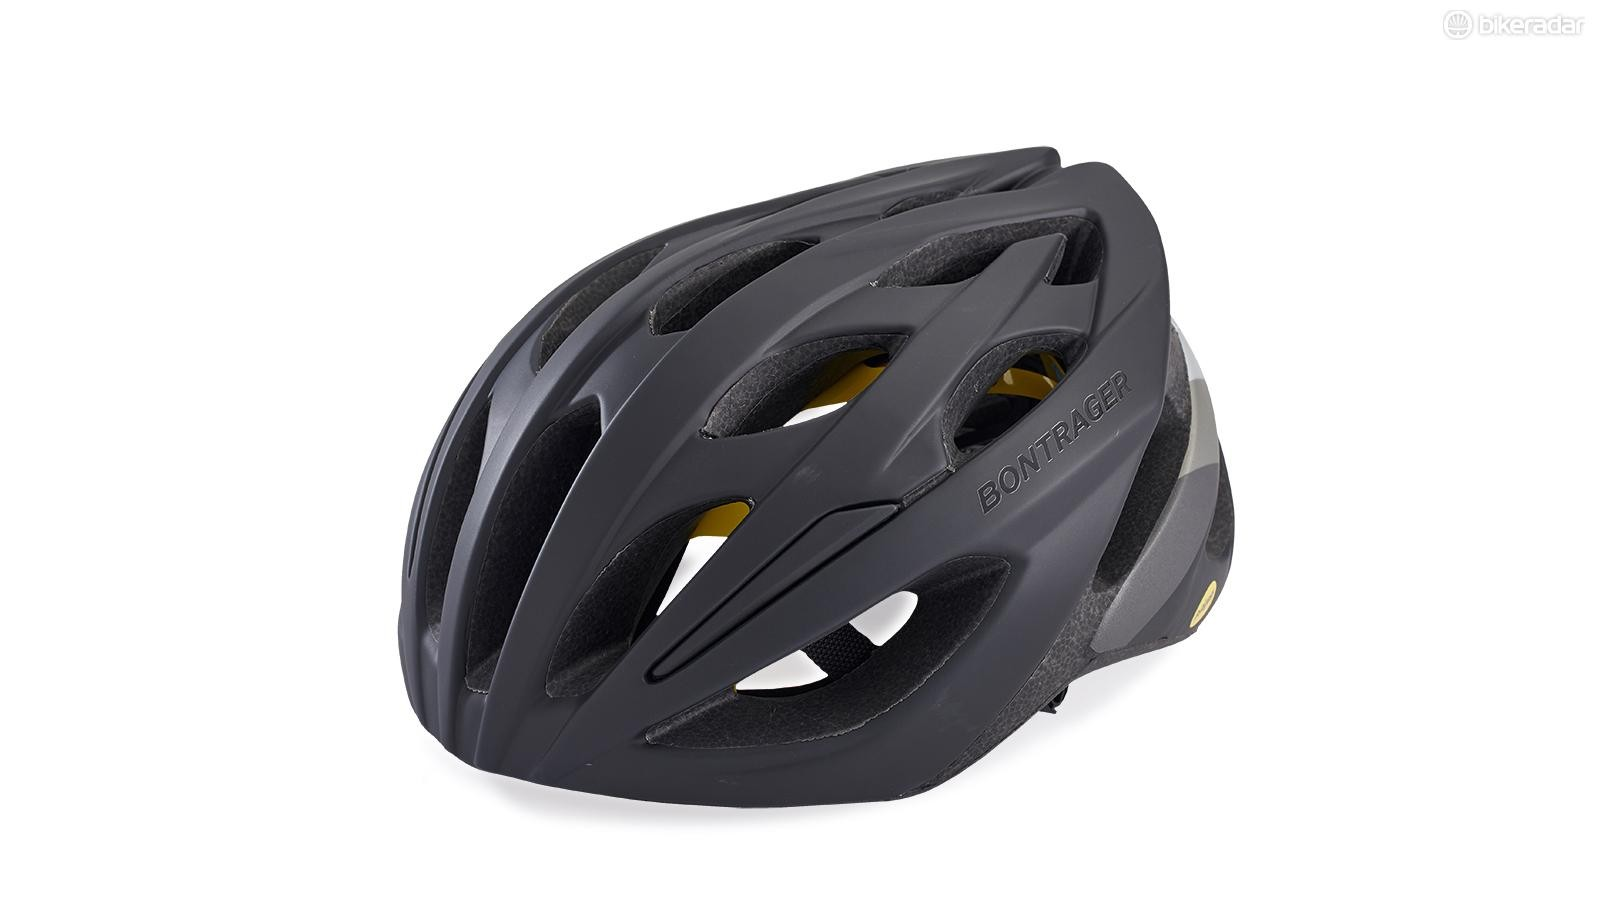 One of the cheapest helmets with MIPS protection